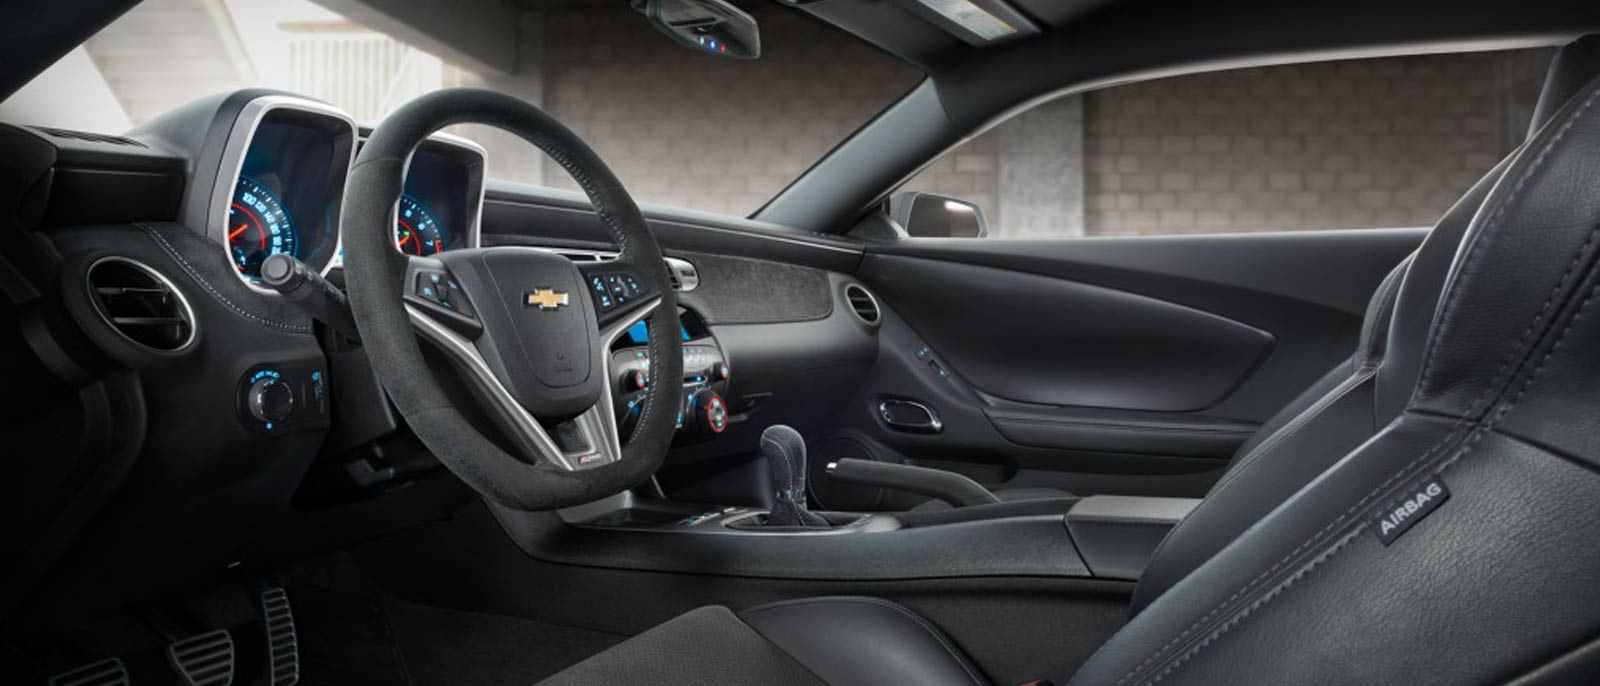 2015 Chevy Camaro Z/28 Interior